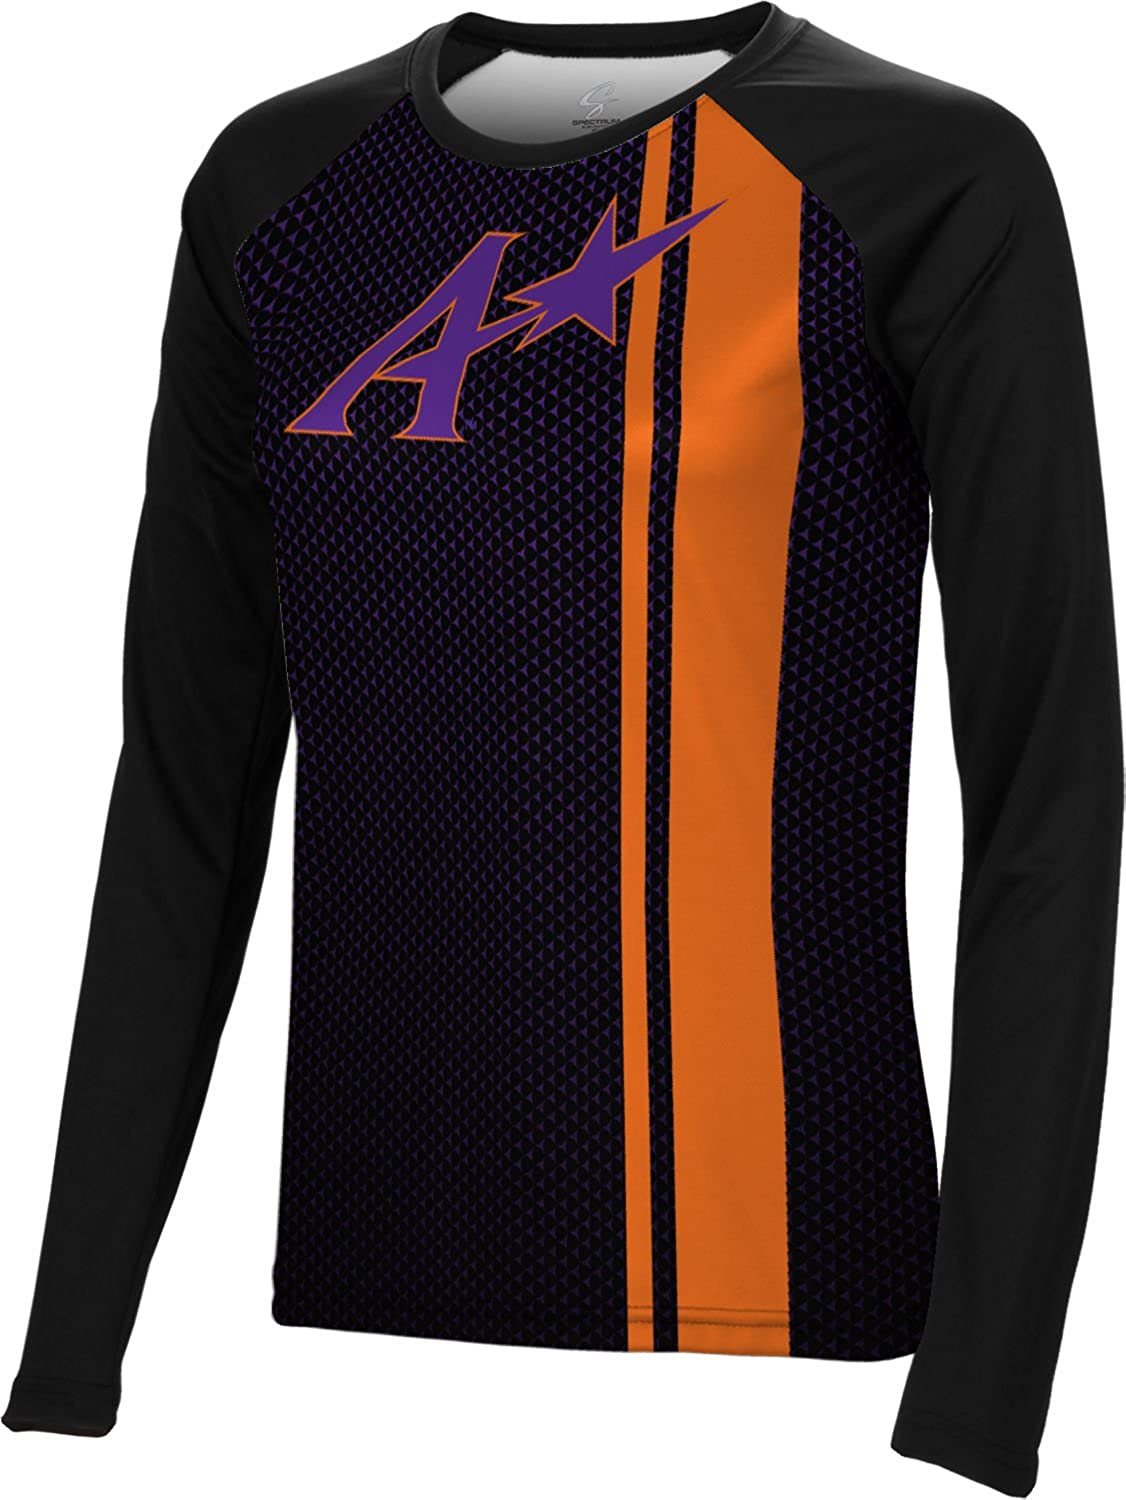 Spectrum Sublimation Women's University of Evansville Vintage Long Sleeve